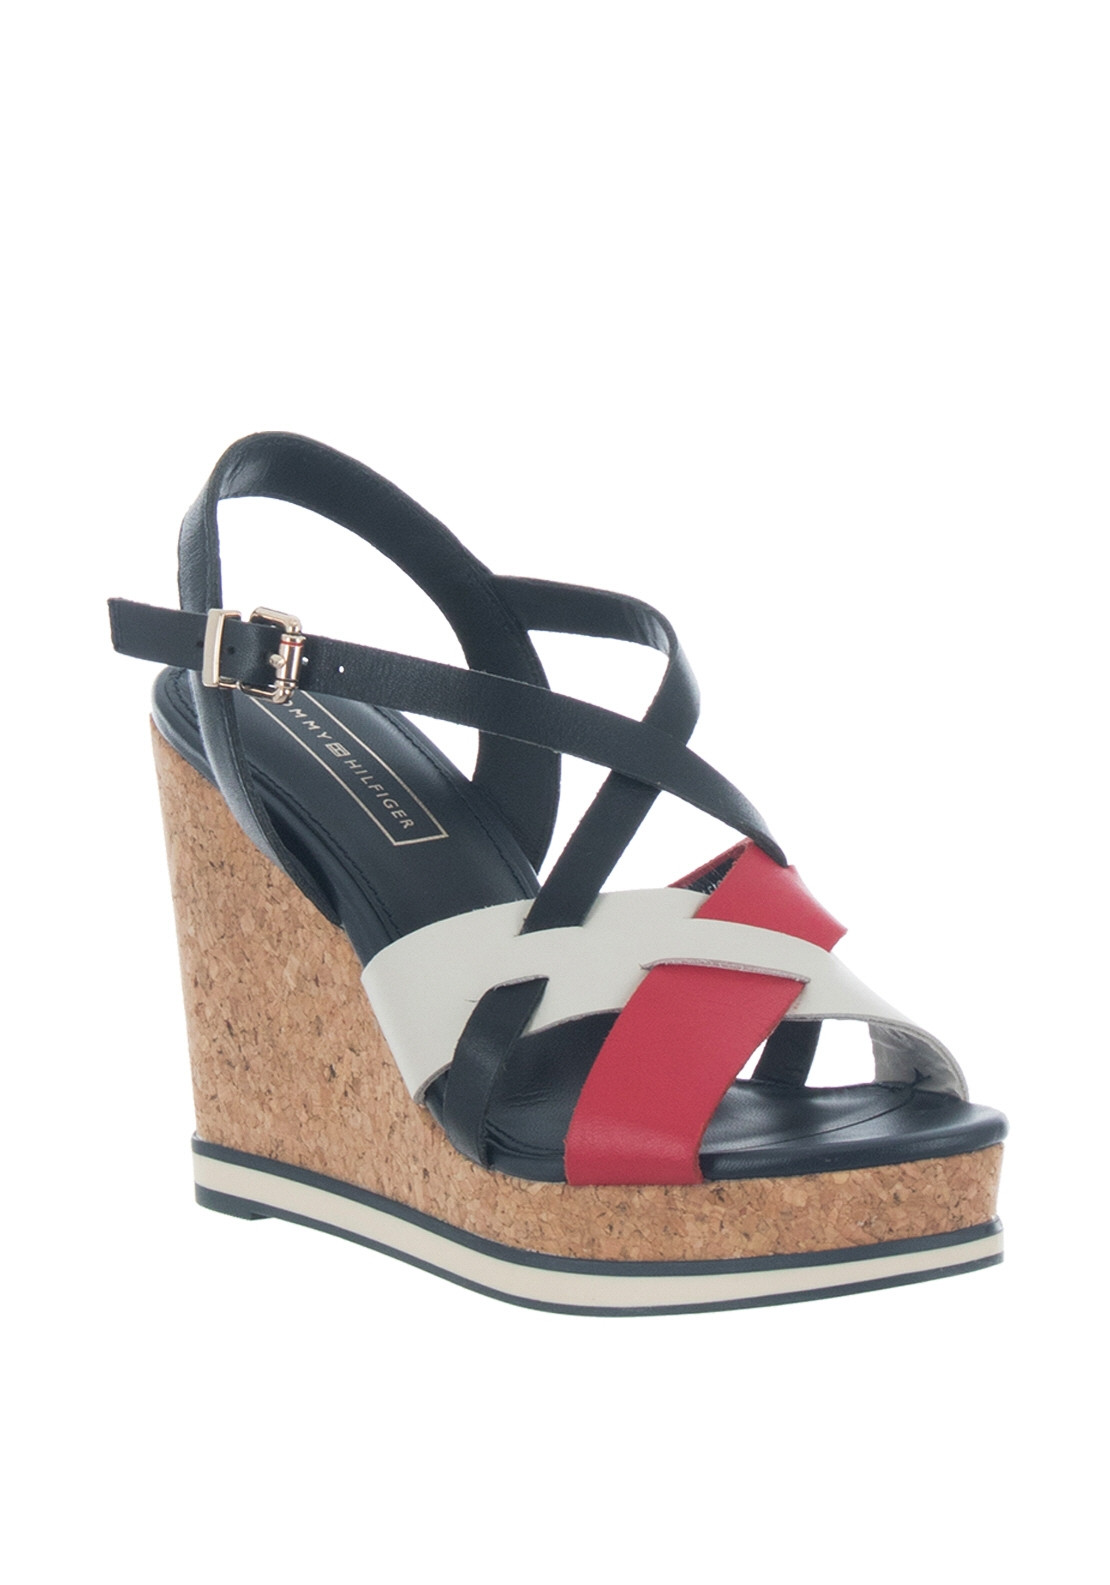 12bfbf458e2 Tommy Hilfiger Womens Contrast Strap Wedge Sandals, Navy & Red. 20% OFF